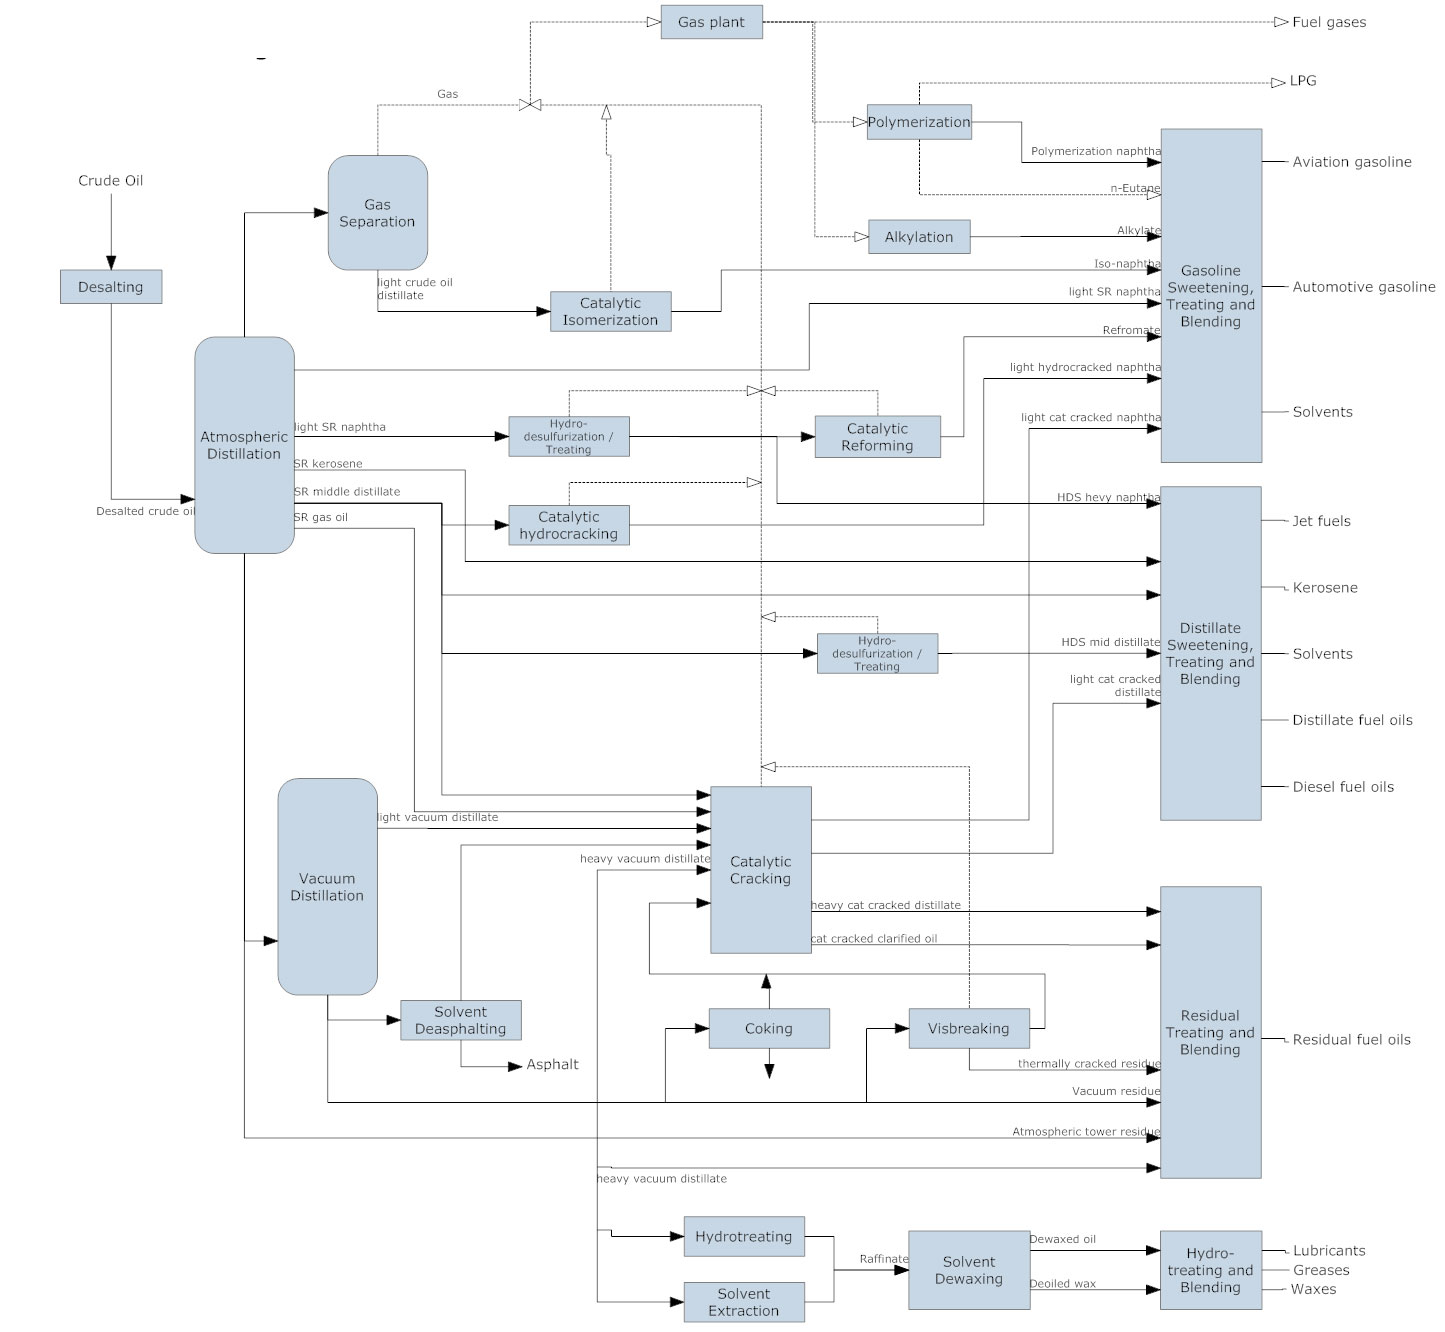 Wind Solar Power Systems Diagrams Wiring Circuit Schematic Likewise Off Grid System On Flowchart Types And Uses Home Plant Diagram